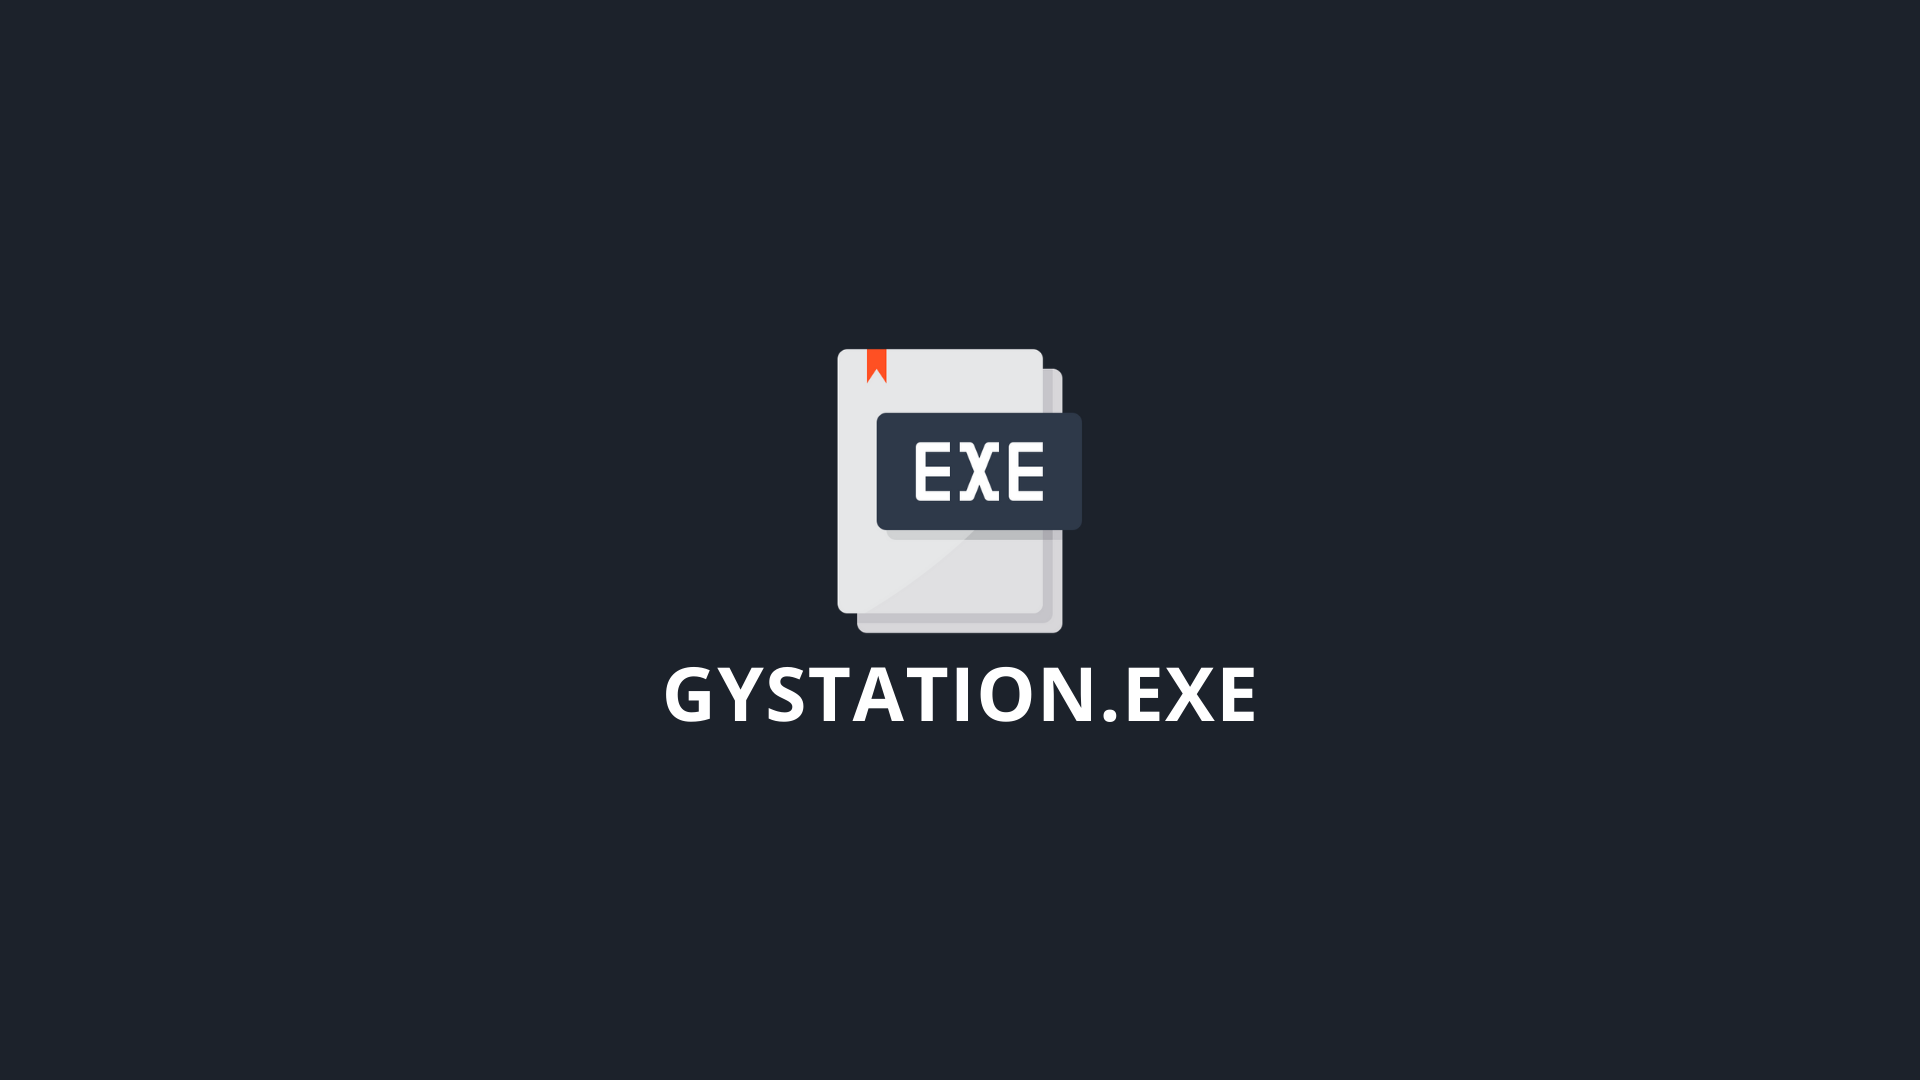 What is GyStation.exe